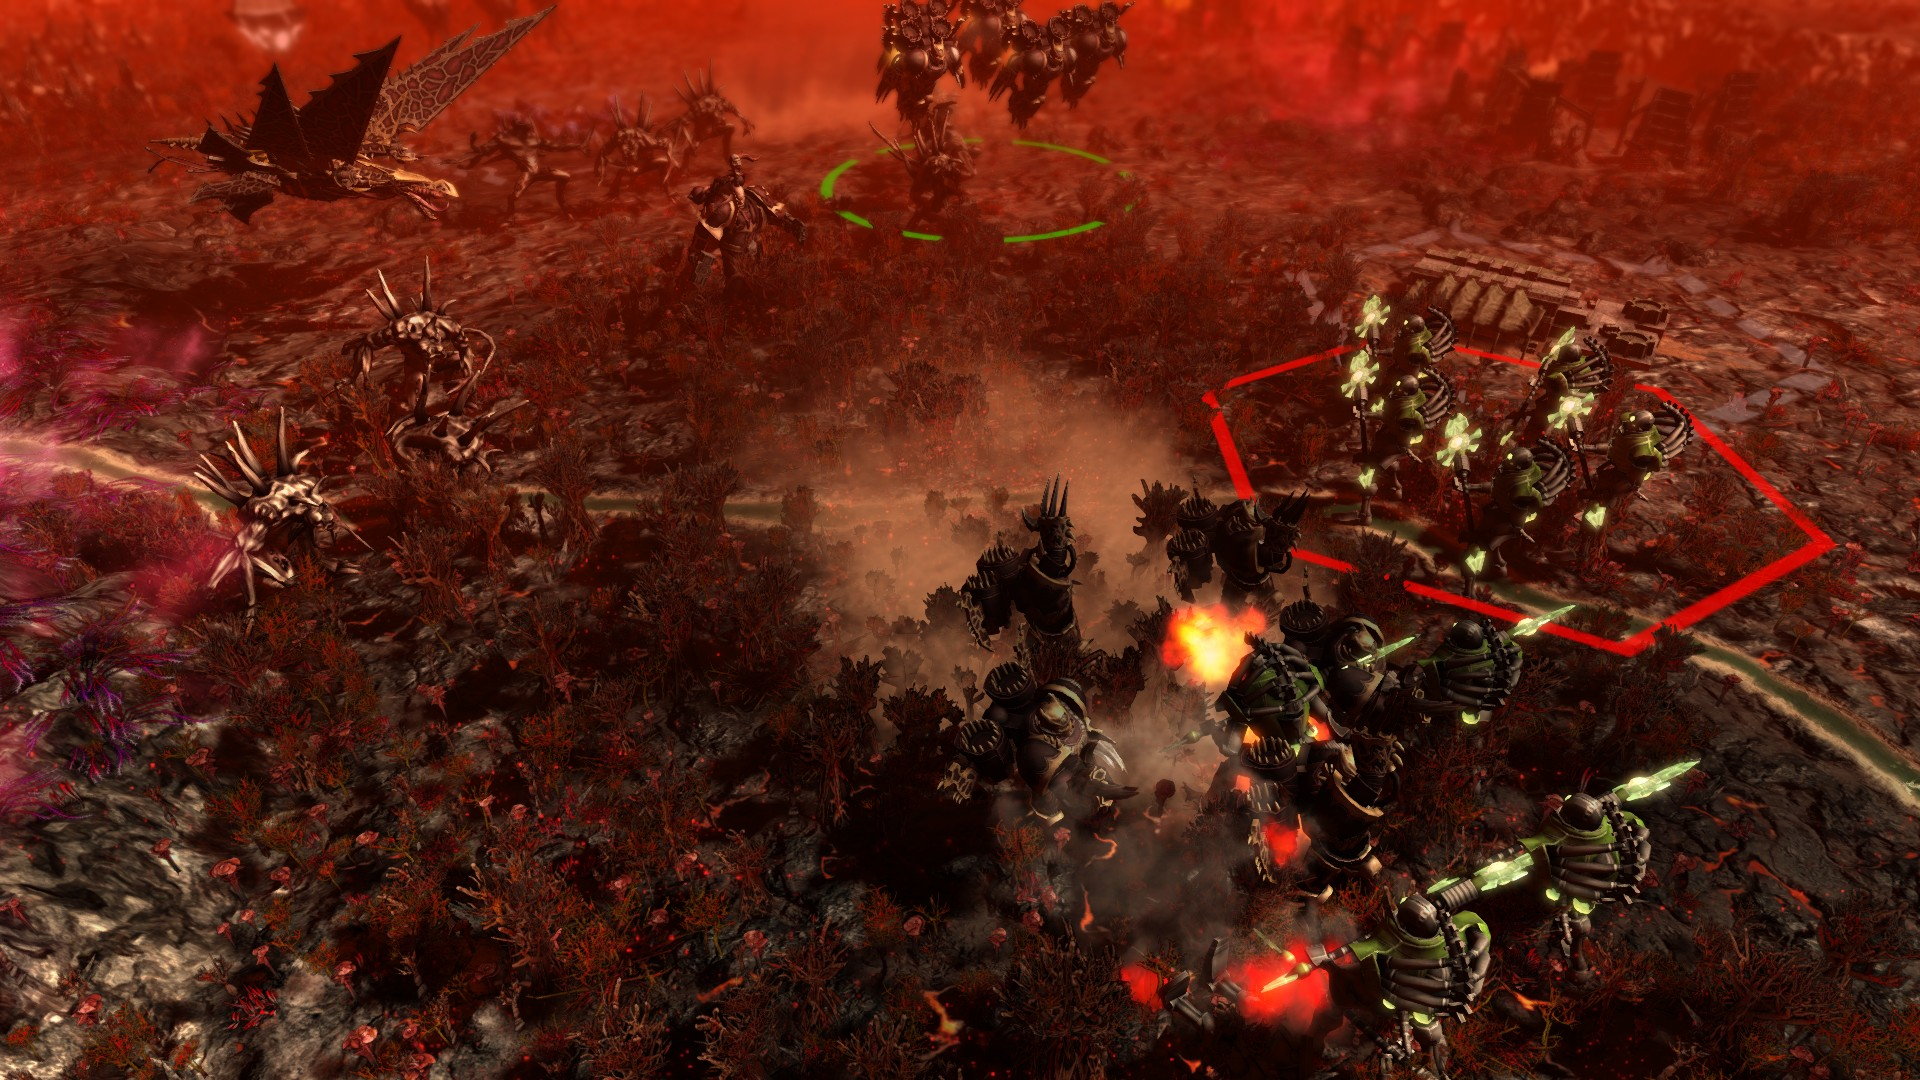 WARHAMMER 40,000: GLADIUS – CHAOS SPACE MARINES steam